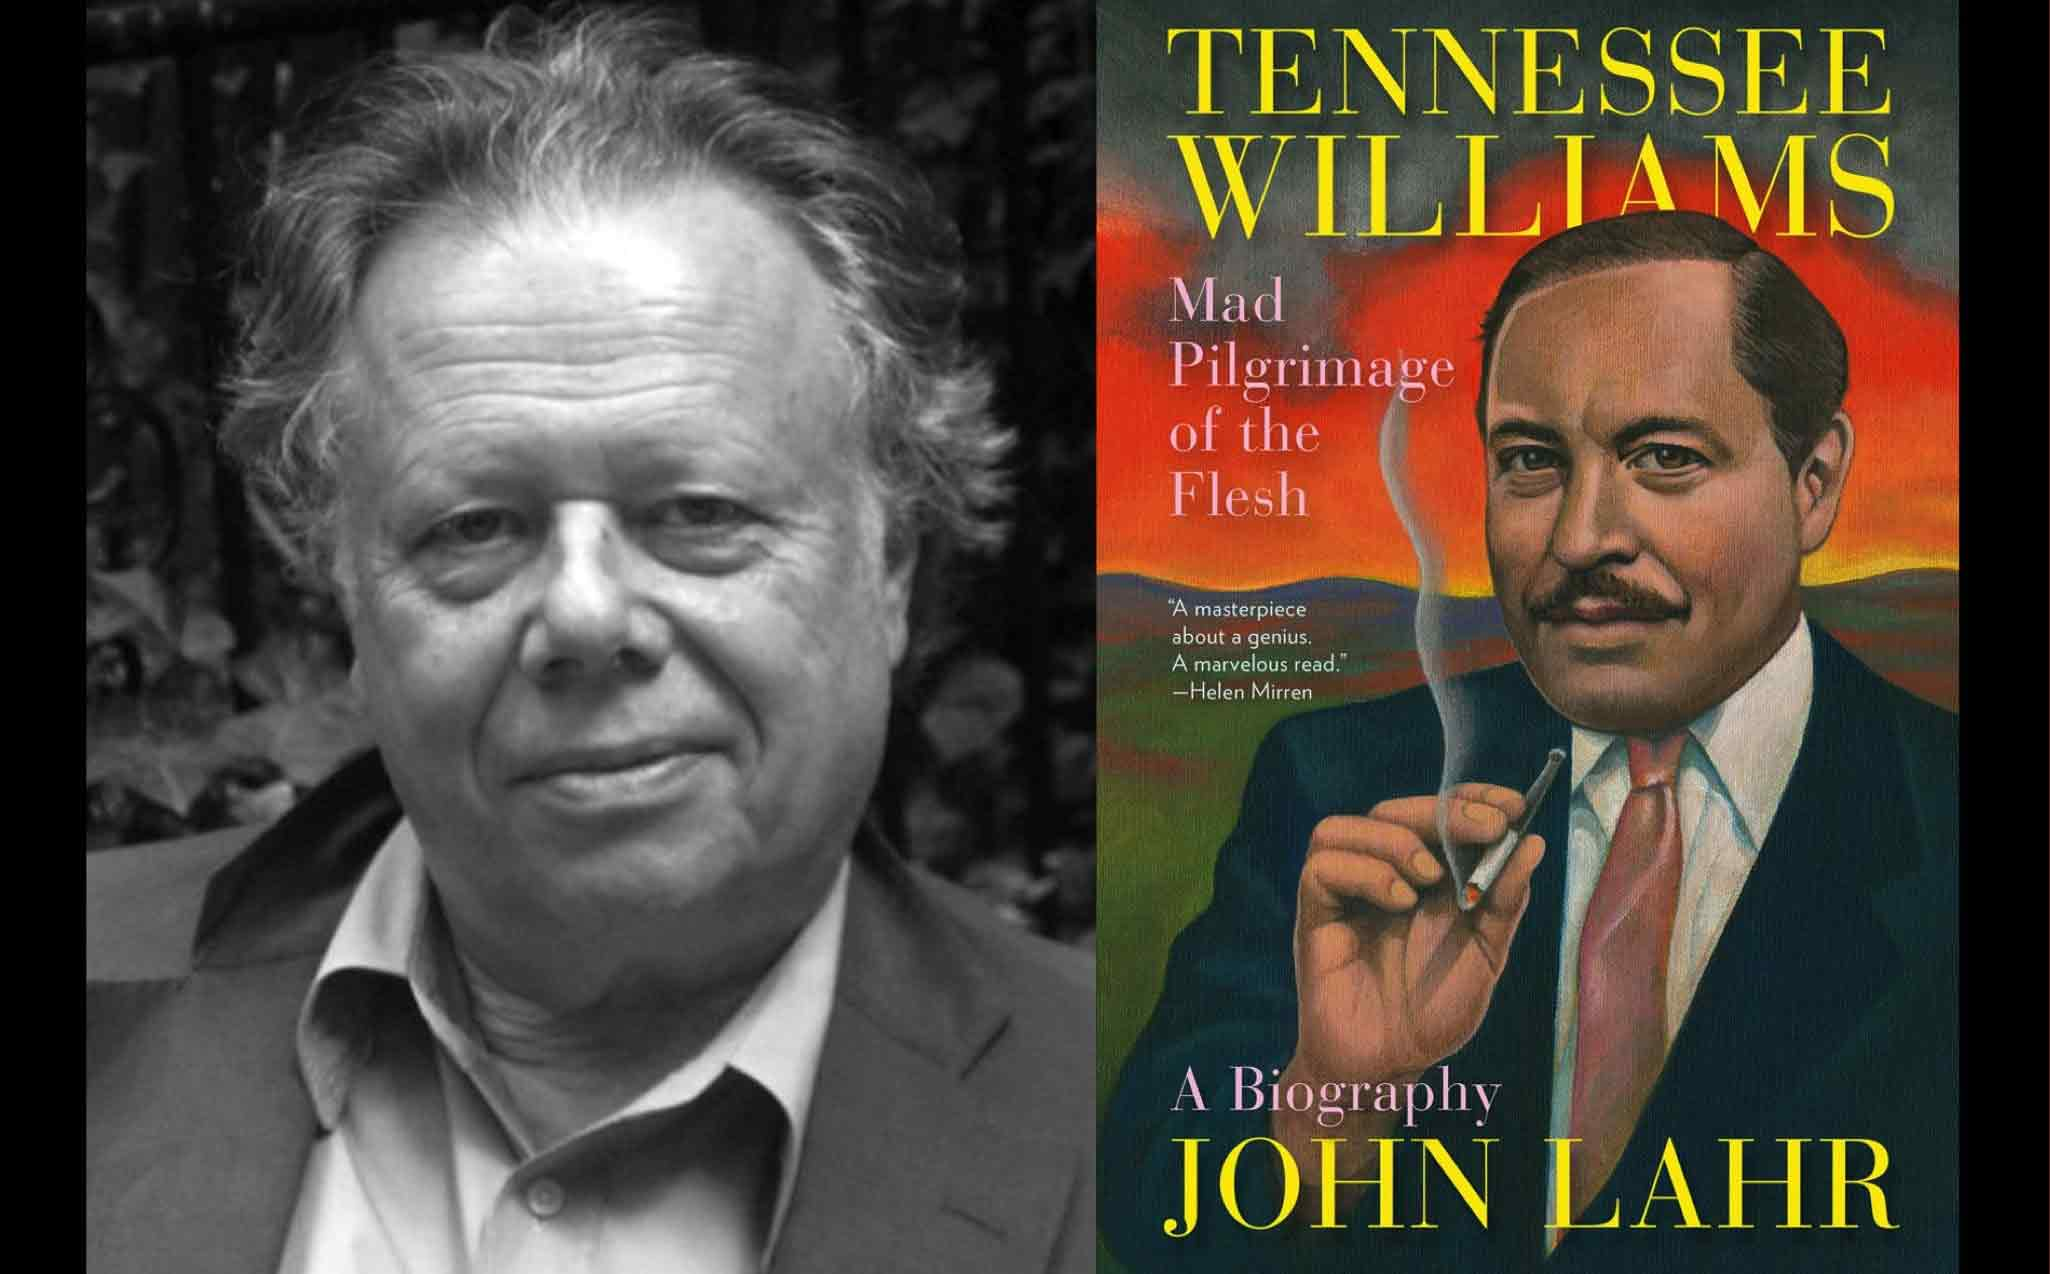 A STREETCAR NAMED DESIRE introduced by Tennessee Williams biographer John Lahr